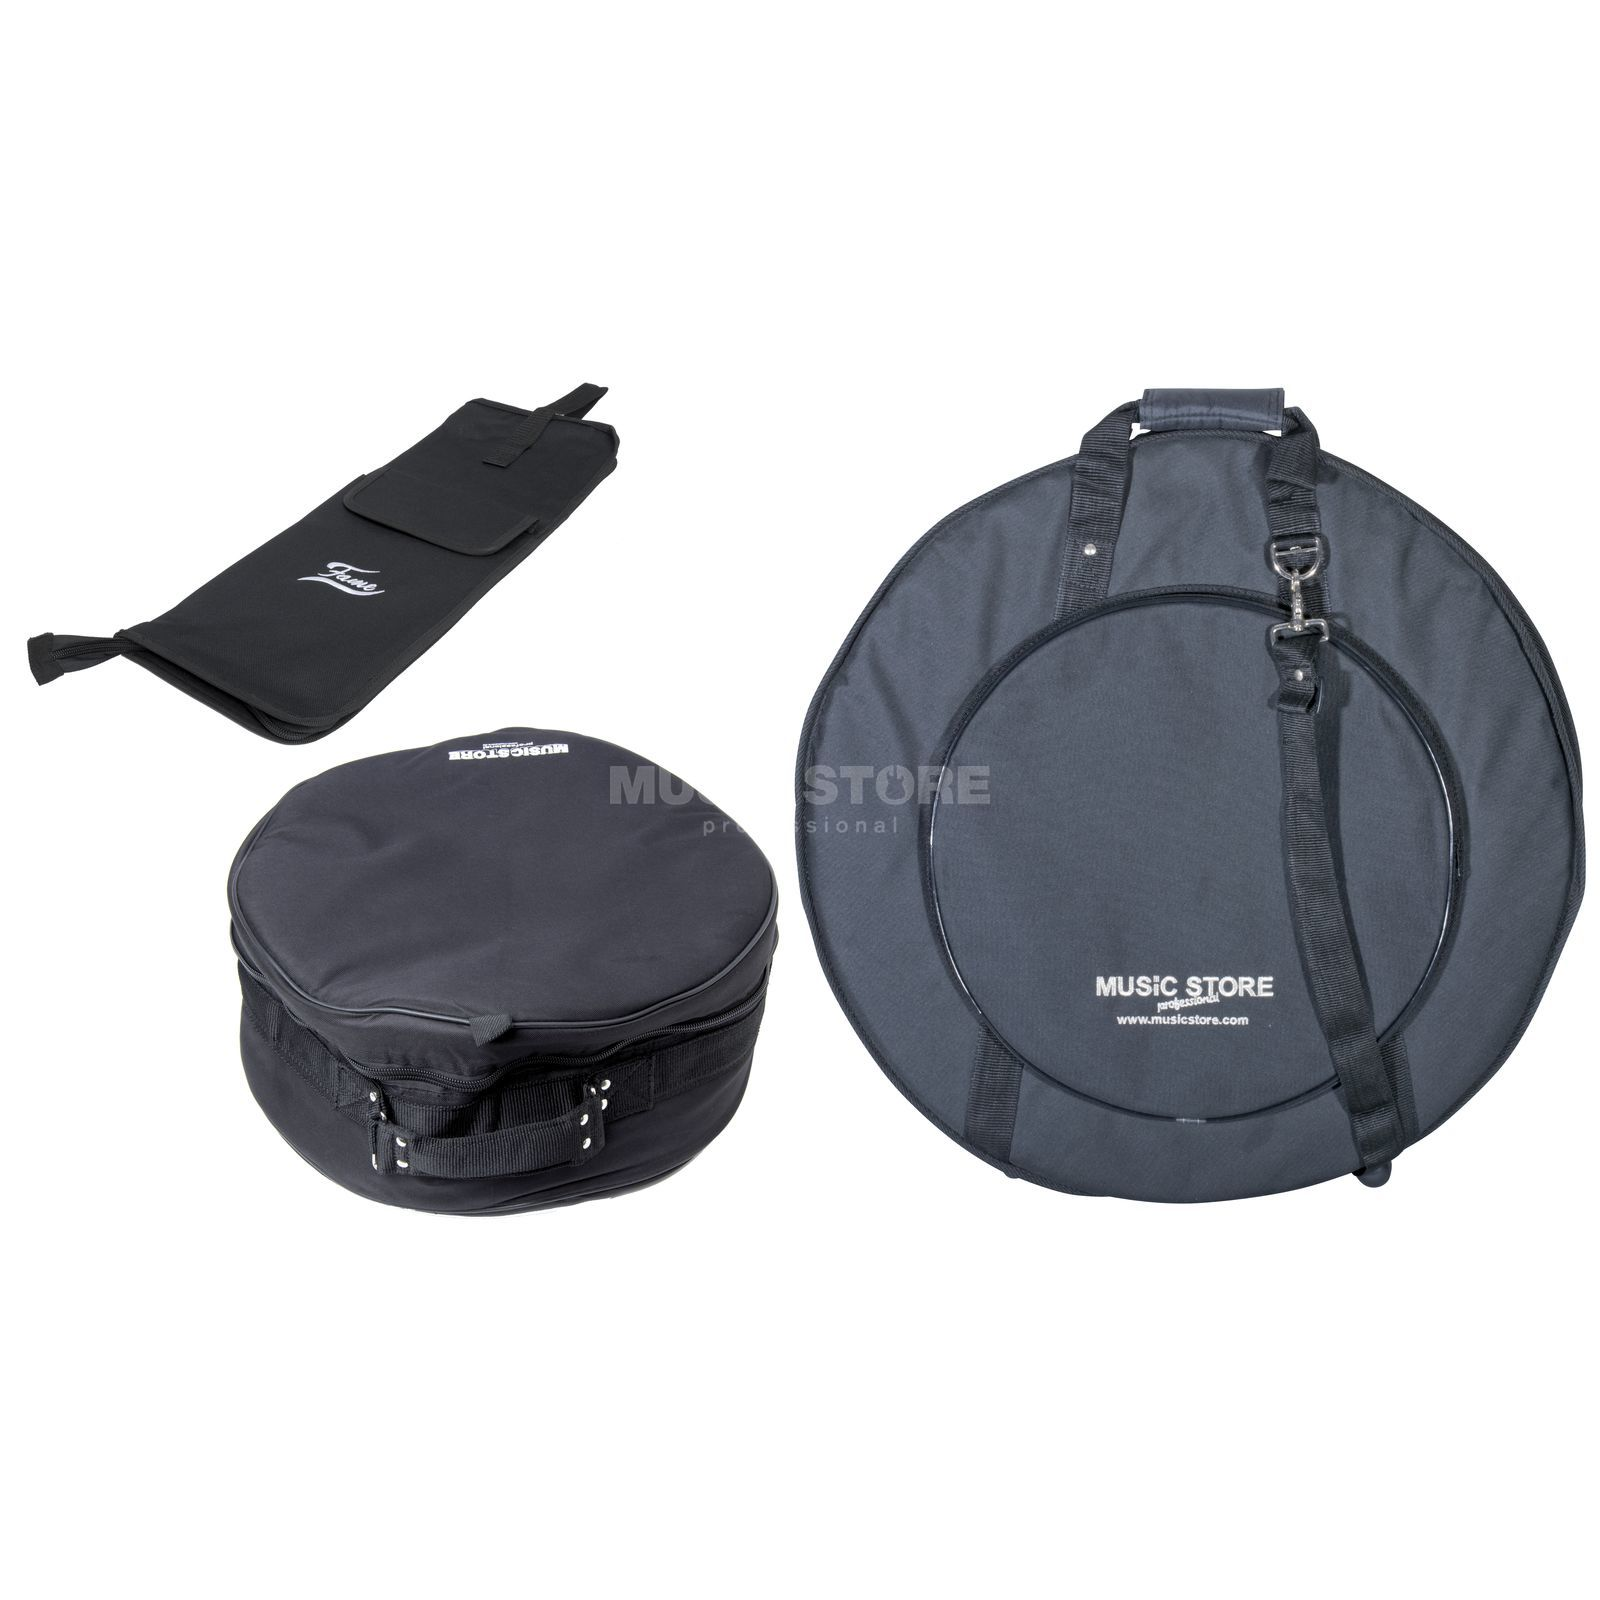 MUSICSTORE Travel Bag Bundle 2 - Set Produktbild